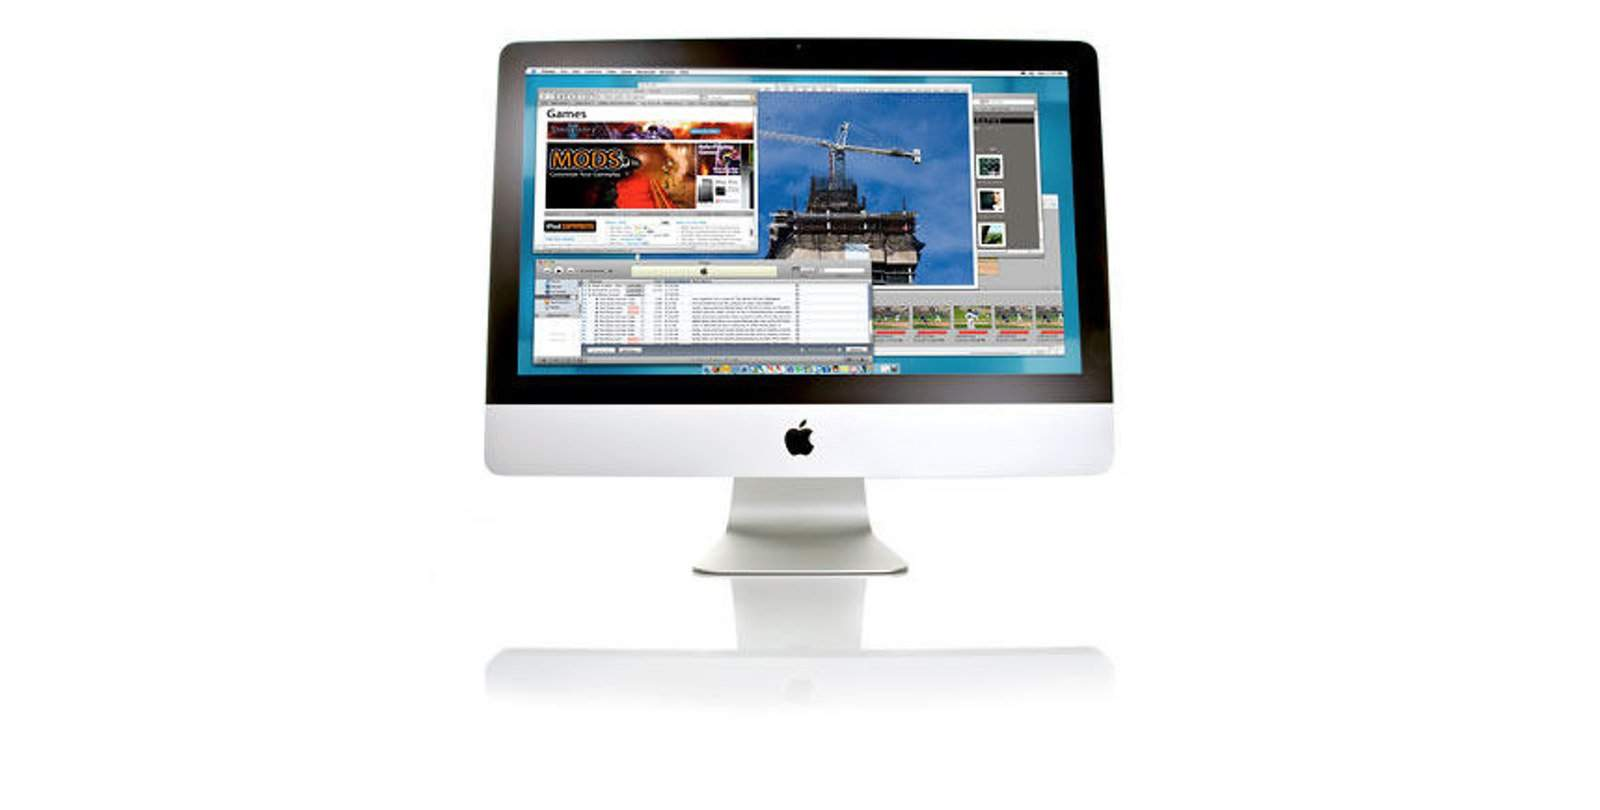 New 21.5 inch iMac Lowers Cost Barrier for Potential Mac Users